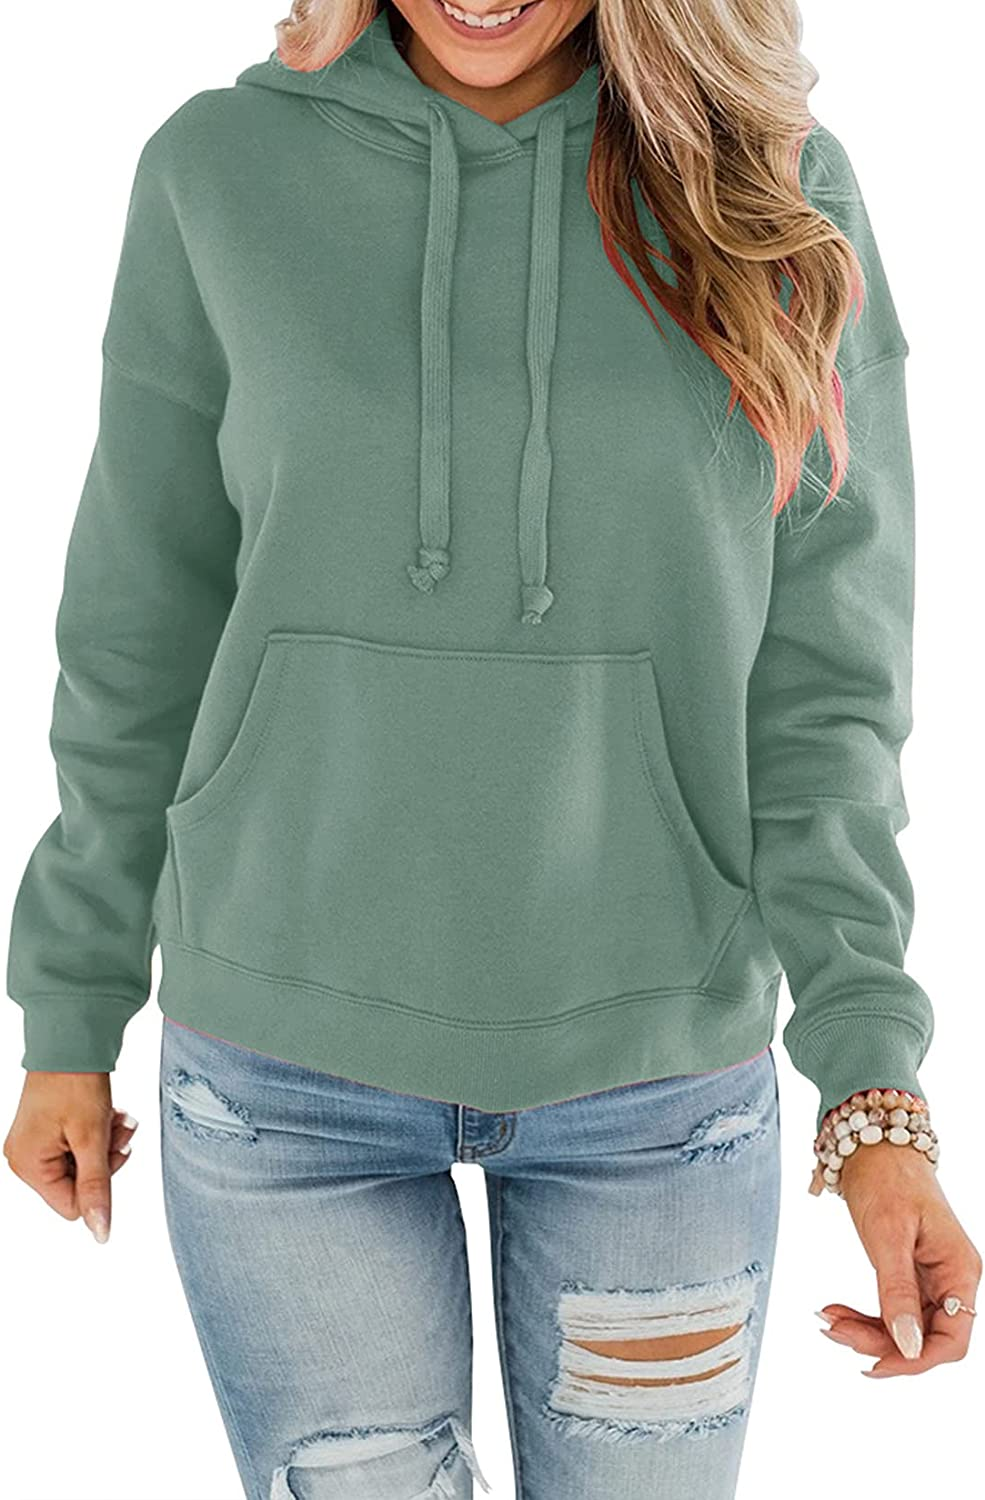 Orchidays Womens Lightweight Hoodies Long Sleeve Casual Pullover Solid Loose Sweatshirt with Pocket